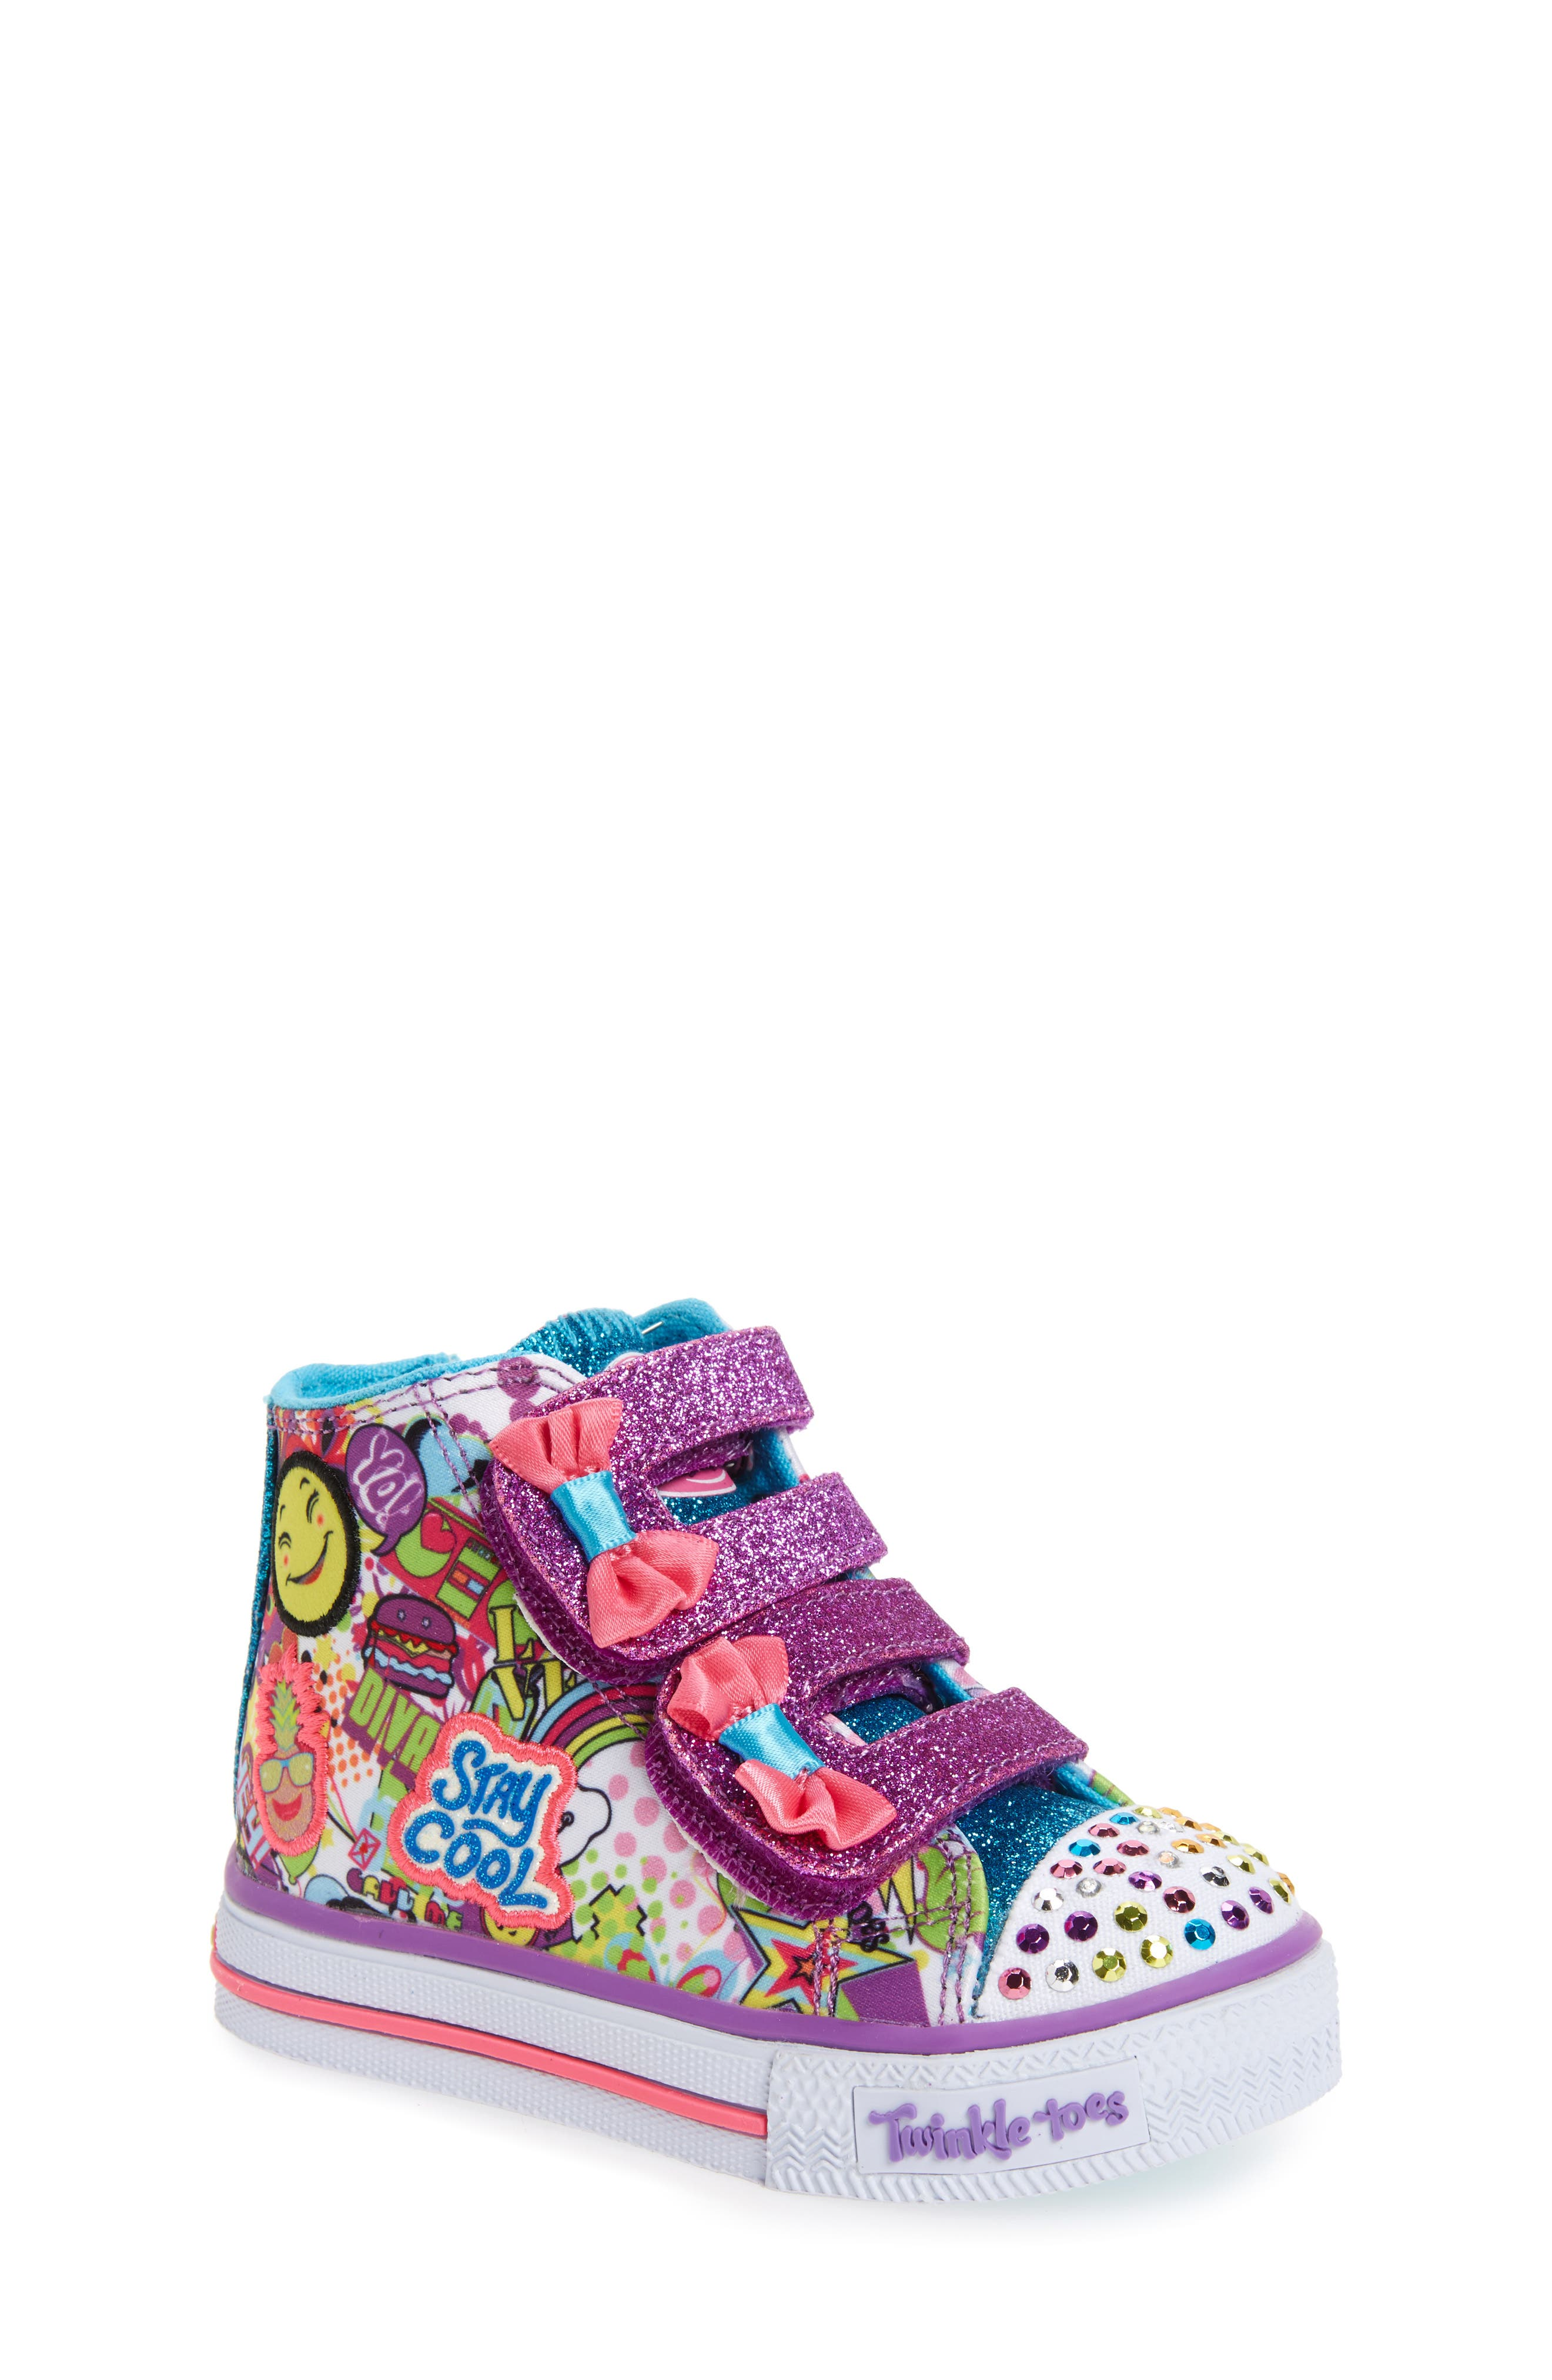 Main Image - SKECHERS Twinkle Toes Shuffles Light-Up Sneaker (Walker & Toddler)